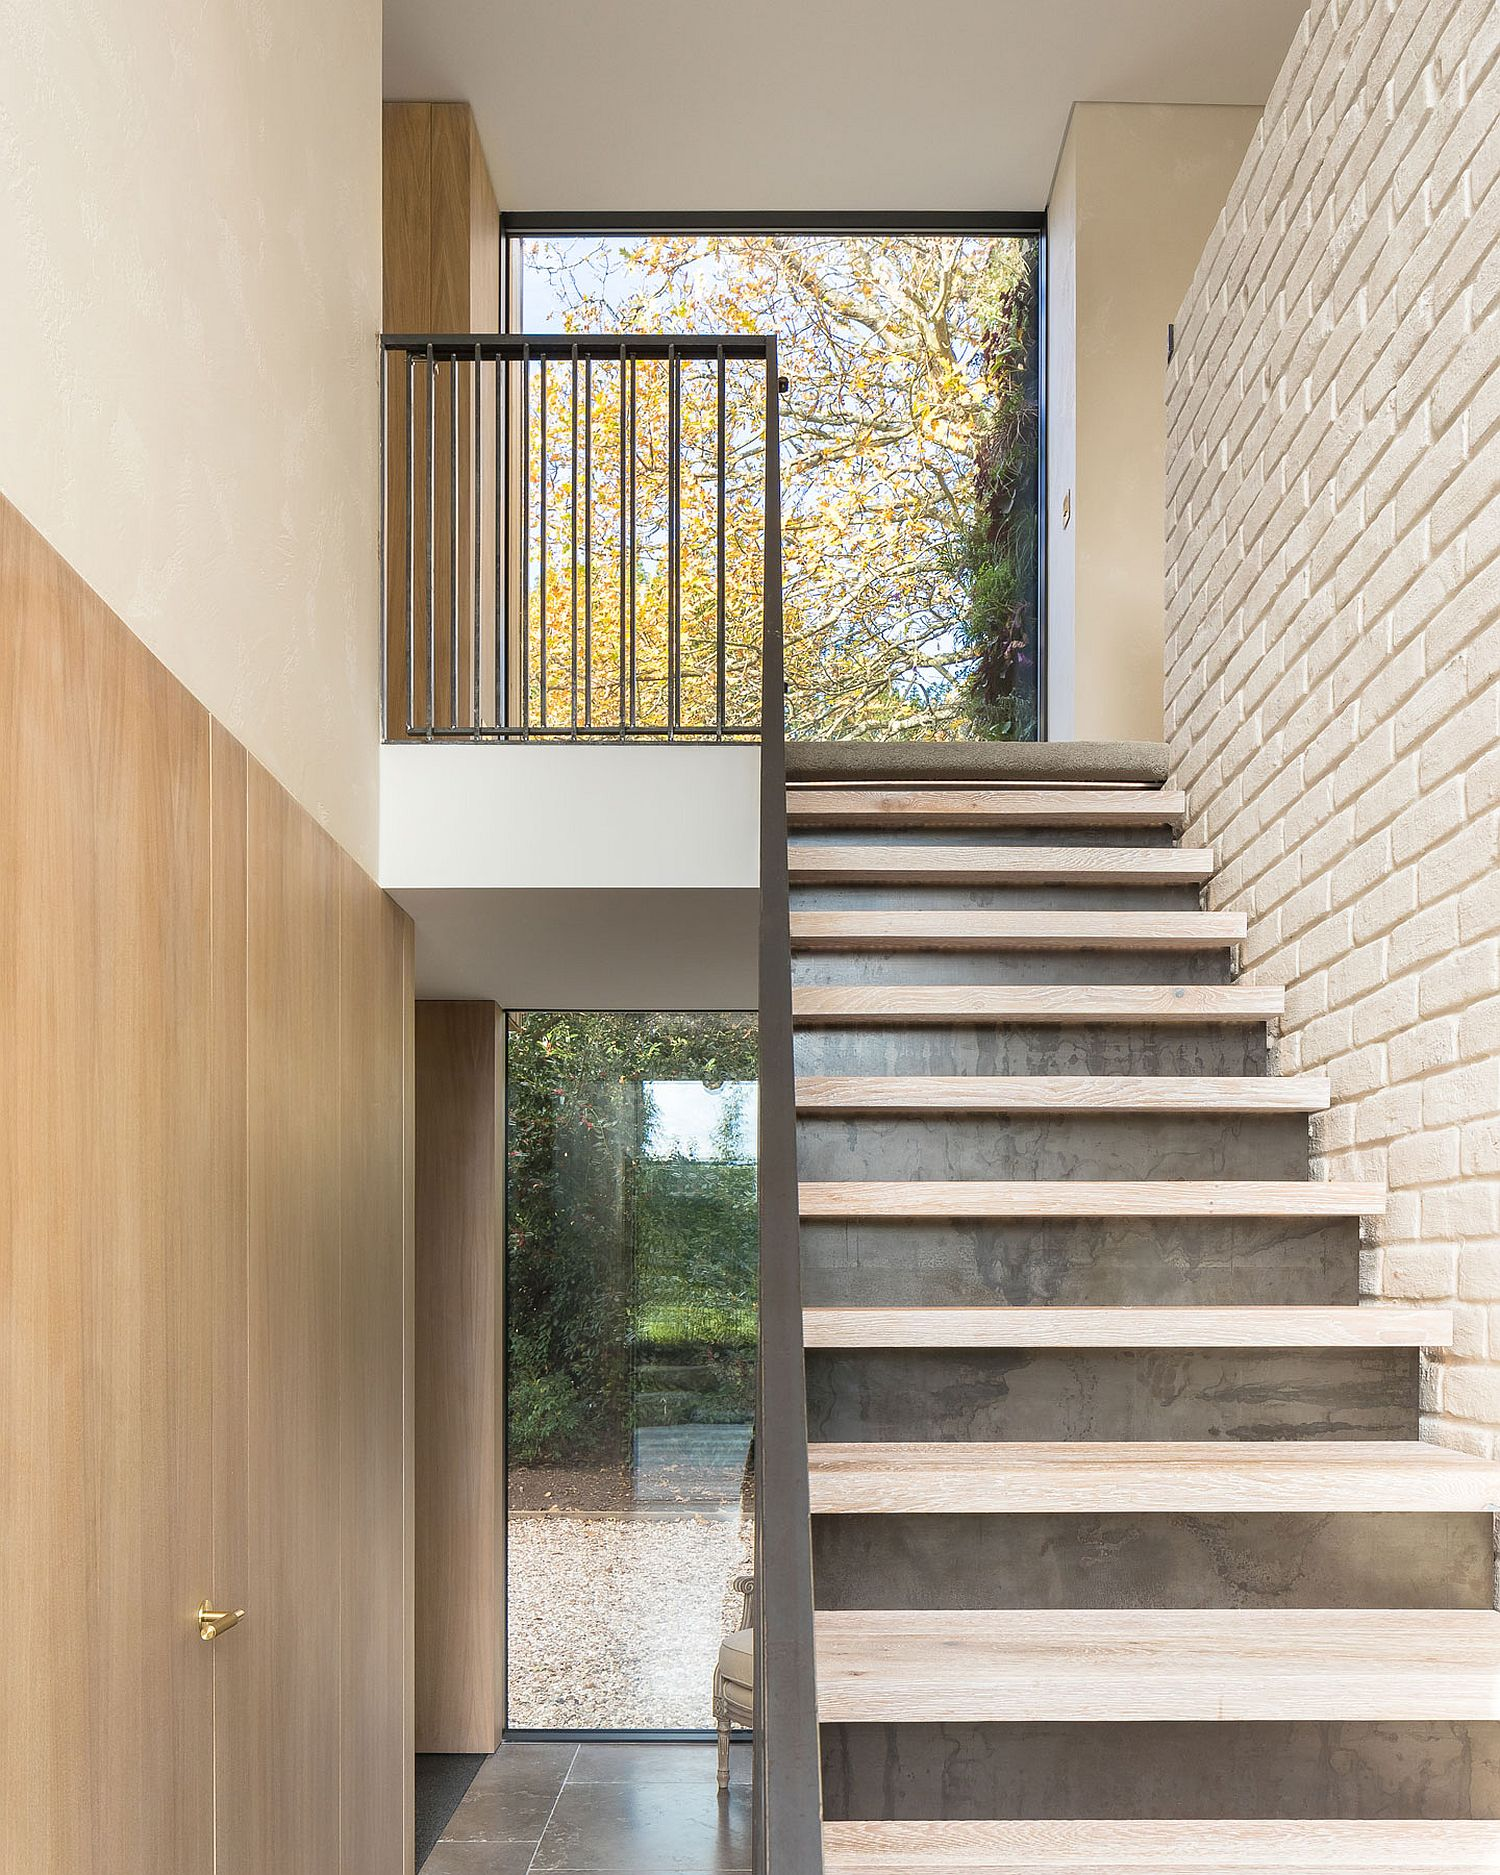 Simple-and-modern-staircase-design-focuses-on-efficinecy